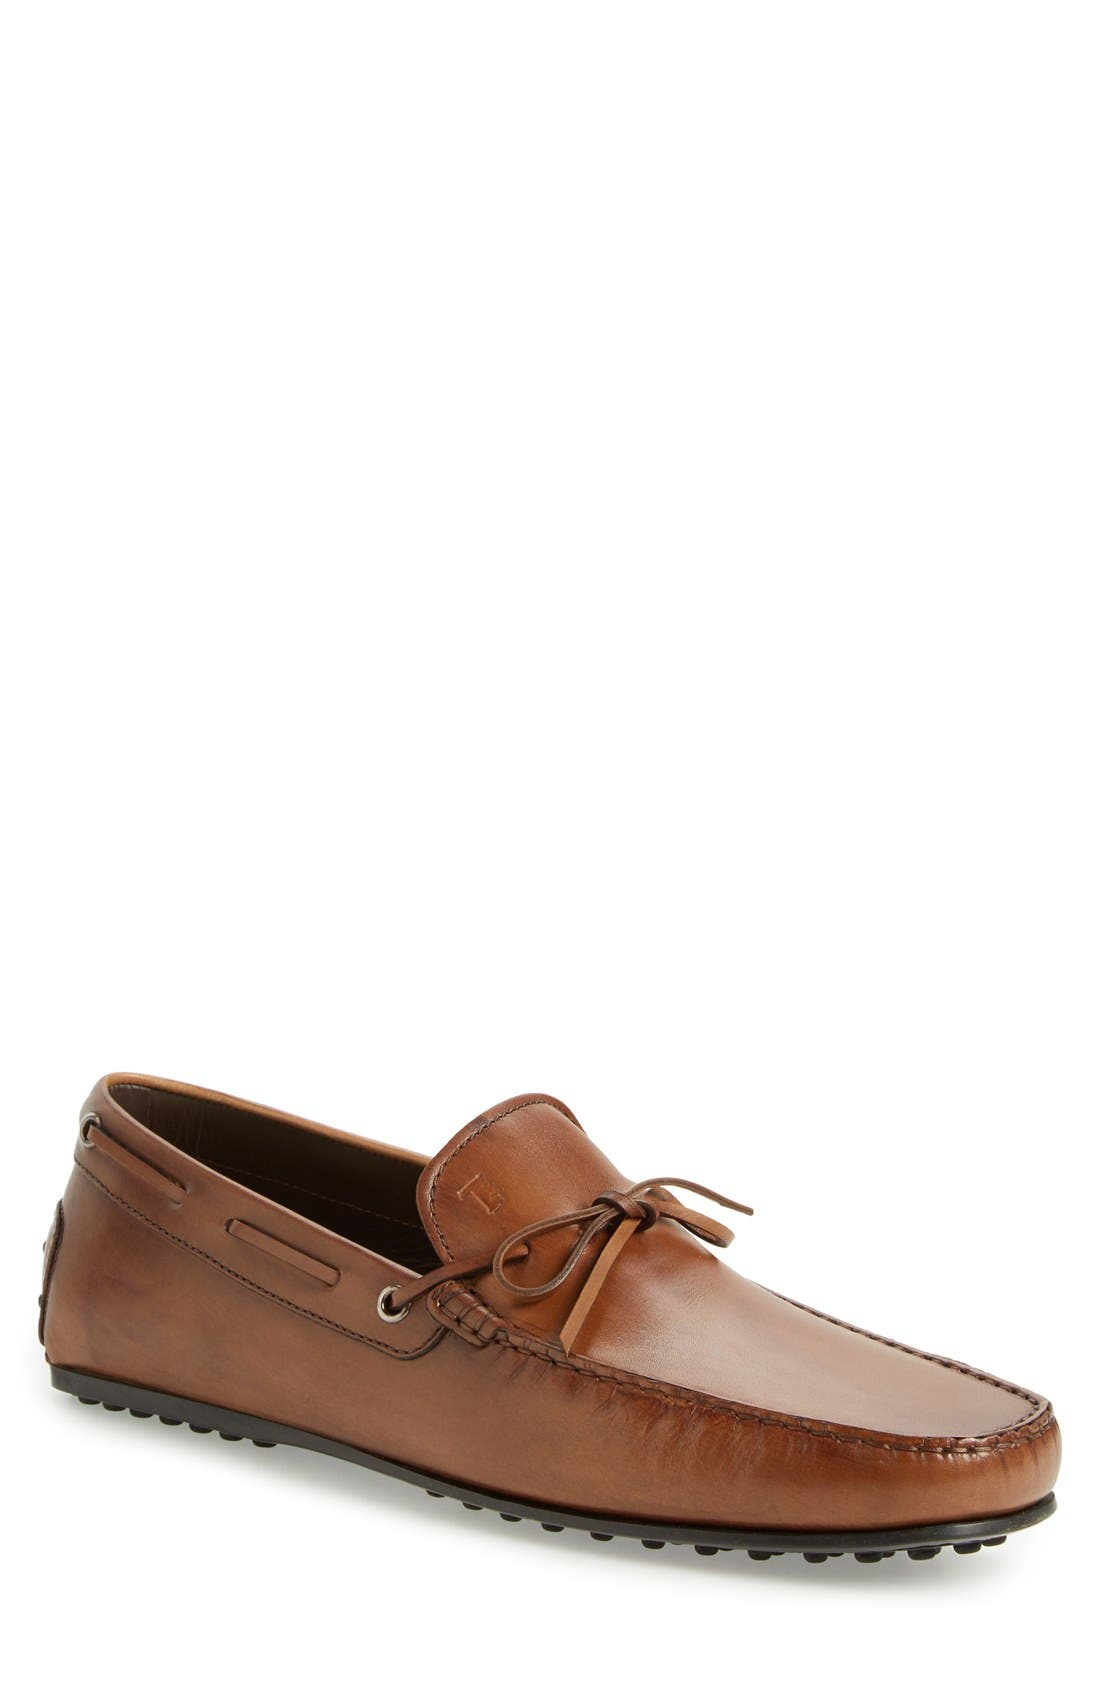 'City Gommini' Tie Front Driving Moccasin,                         Main,                         color, 220